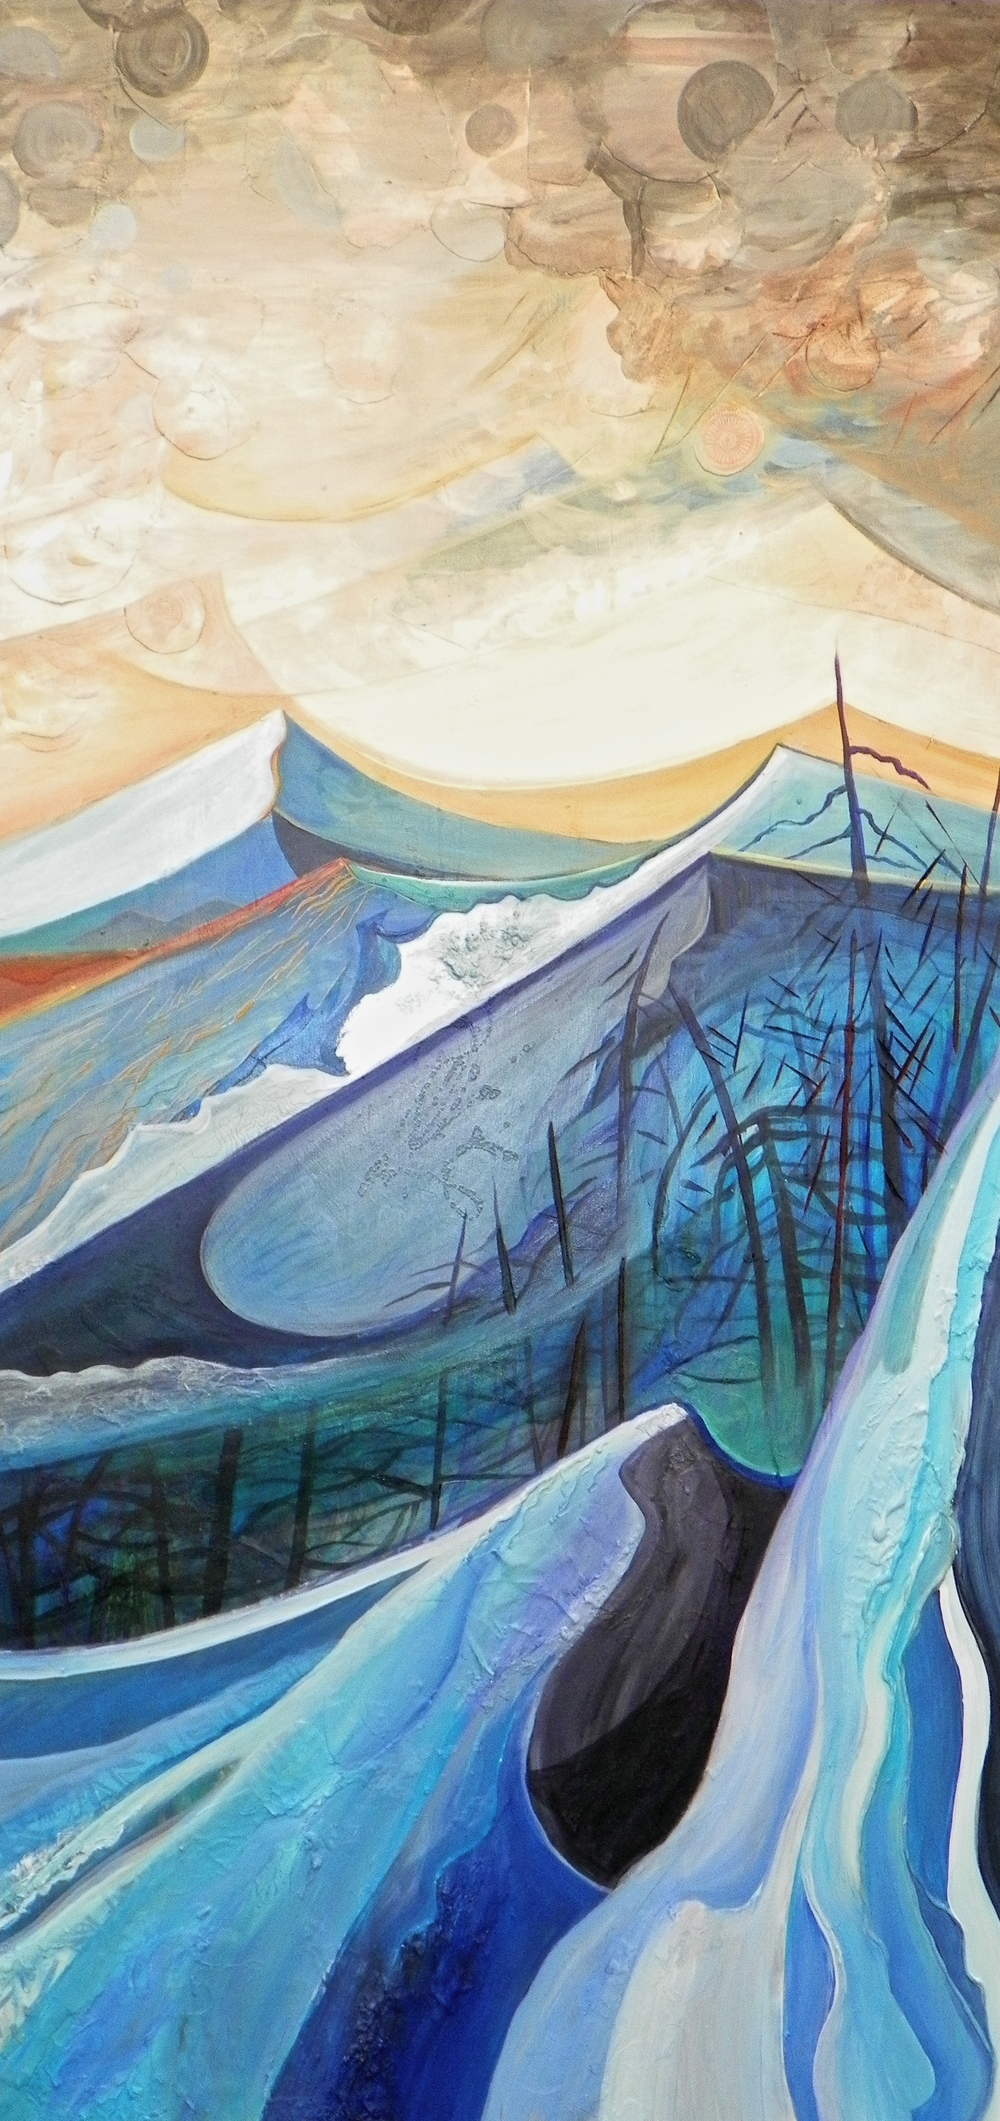 "Layers of the Mountain -   Acrylic   on canvas - 48 "" x 24"" - 2011"